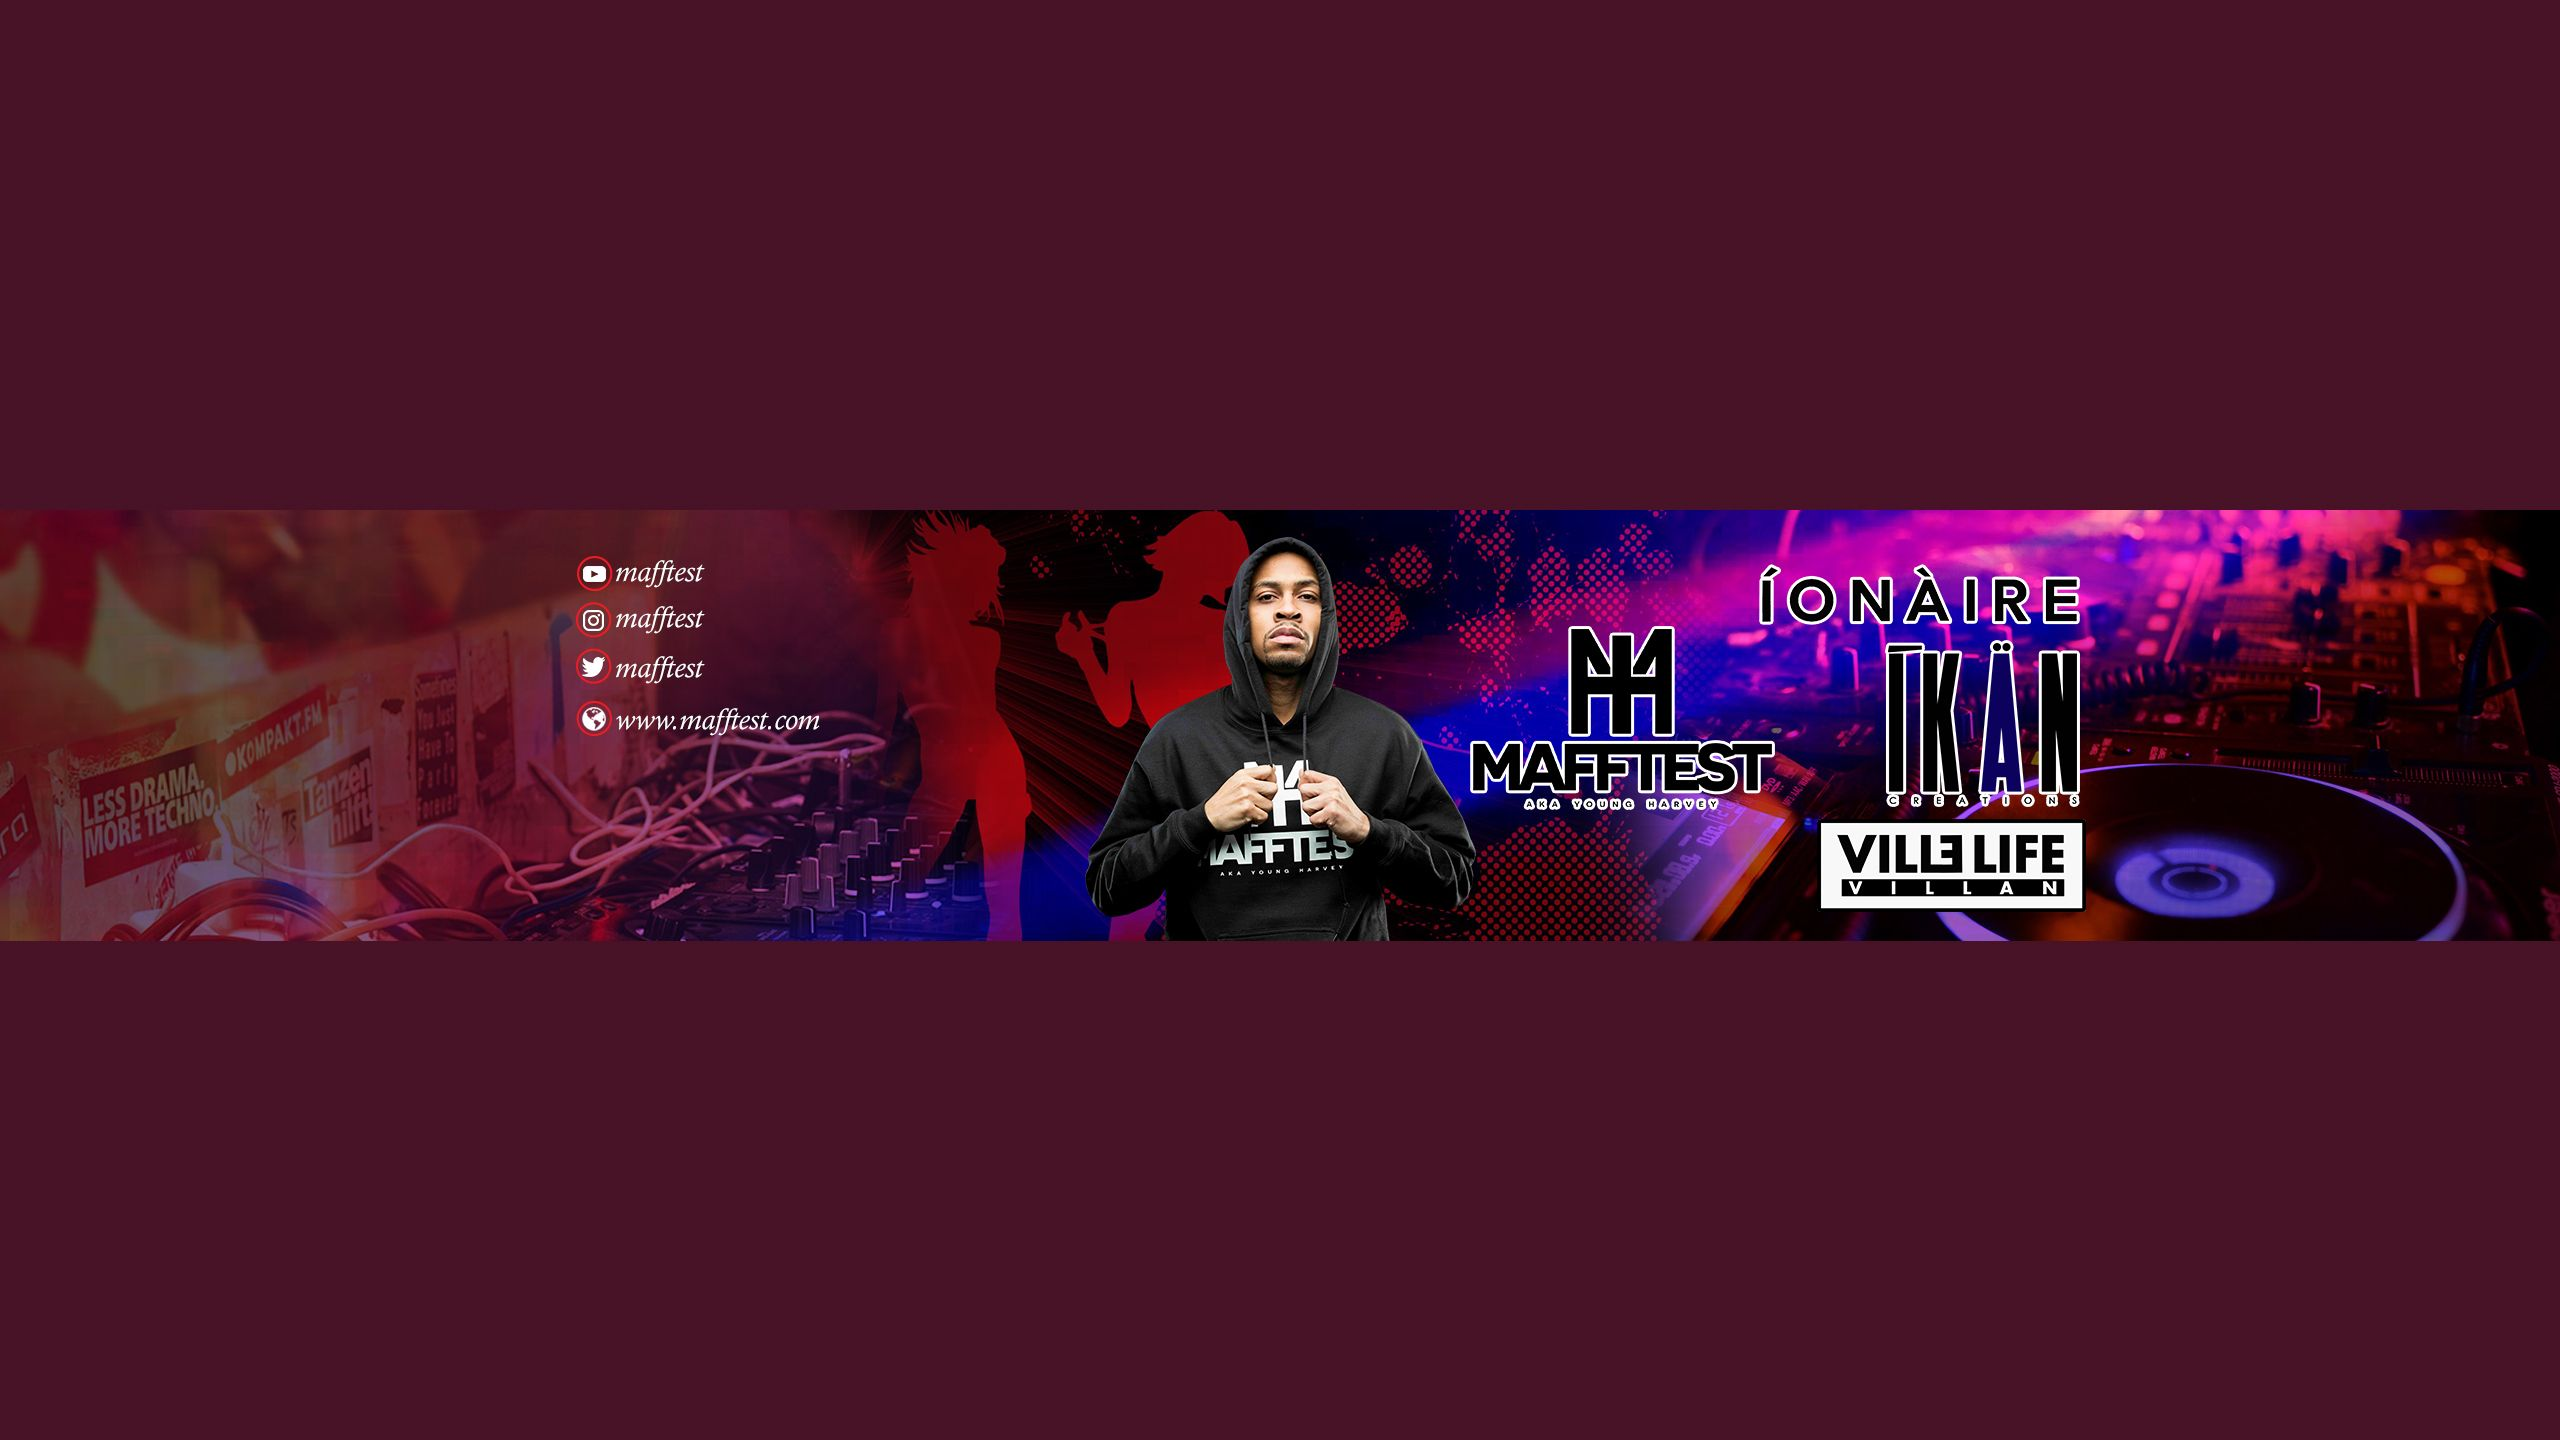 Amazing Youtube banner Design. It create for my personal